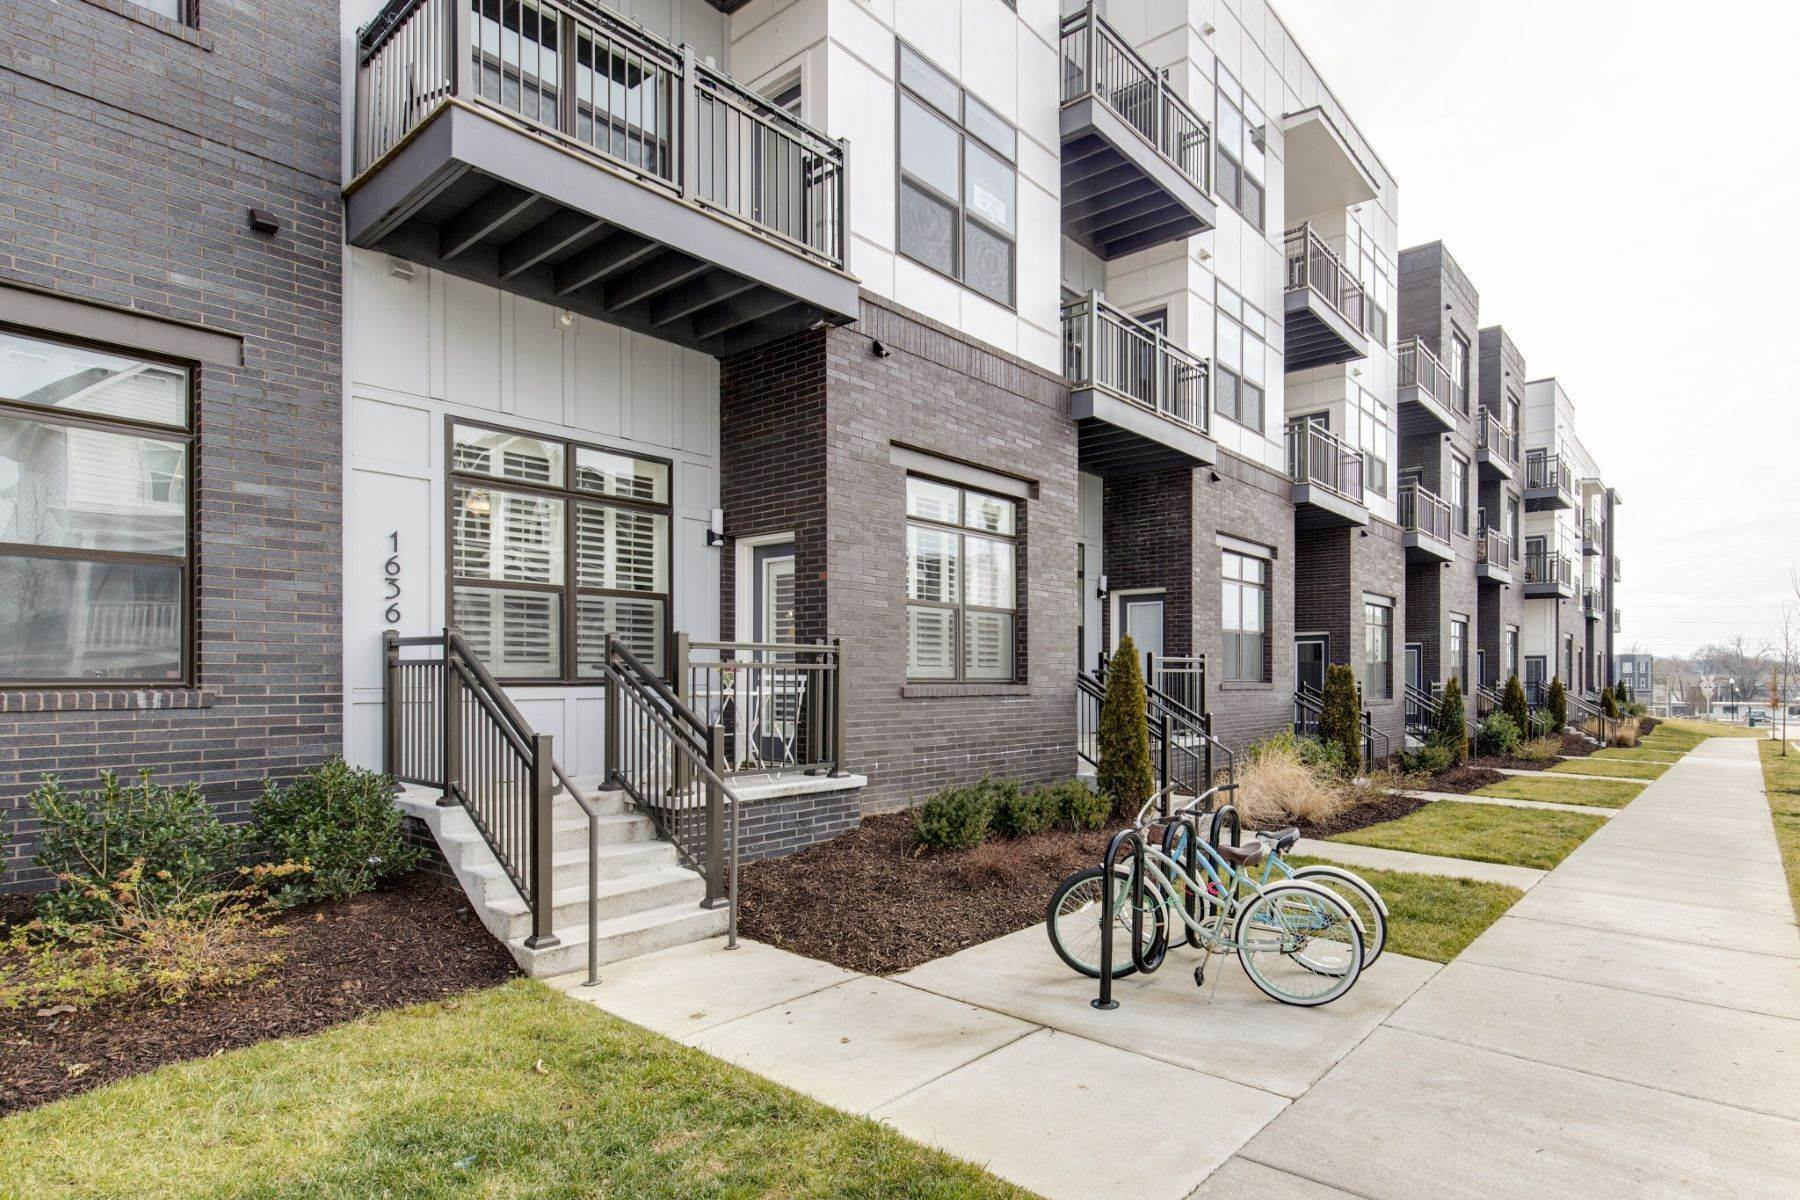 Condominiums for Sale at 1636 54th Ave N, Nashville, Tn, 37209 1636 54th Ave N Nashville, Tennessee 37209 United States